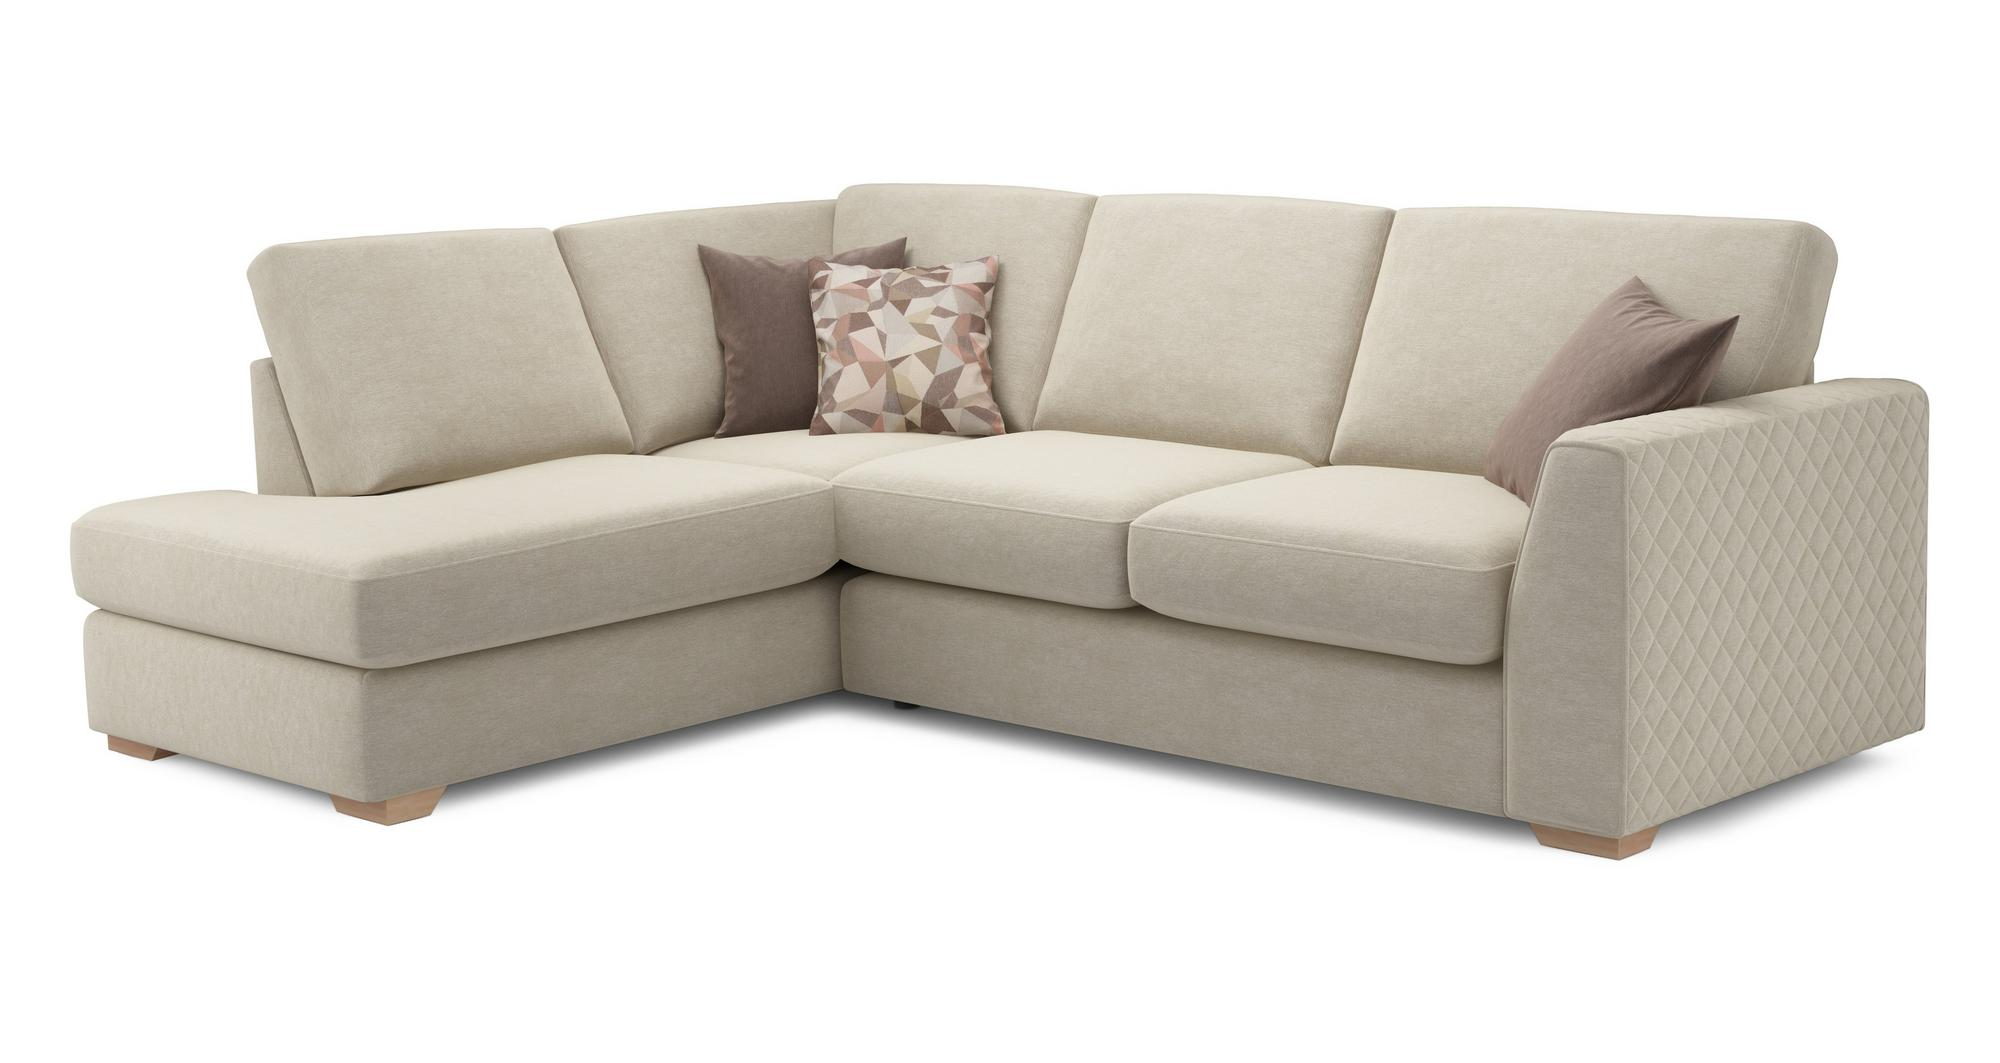 Dfs Eleanor Cream Fabric Right Arm Facing Open End Corner Sofa